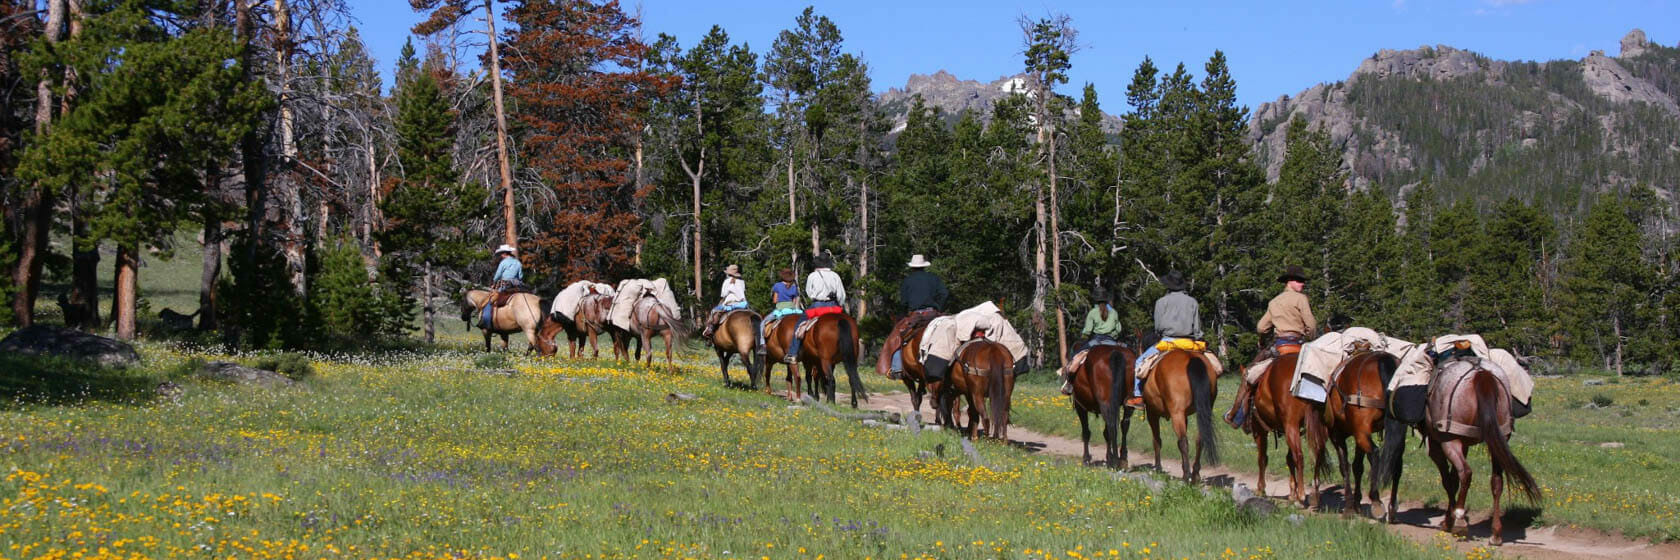 Pack trip at Allens Diamond 4 Ranch